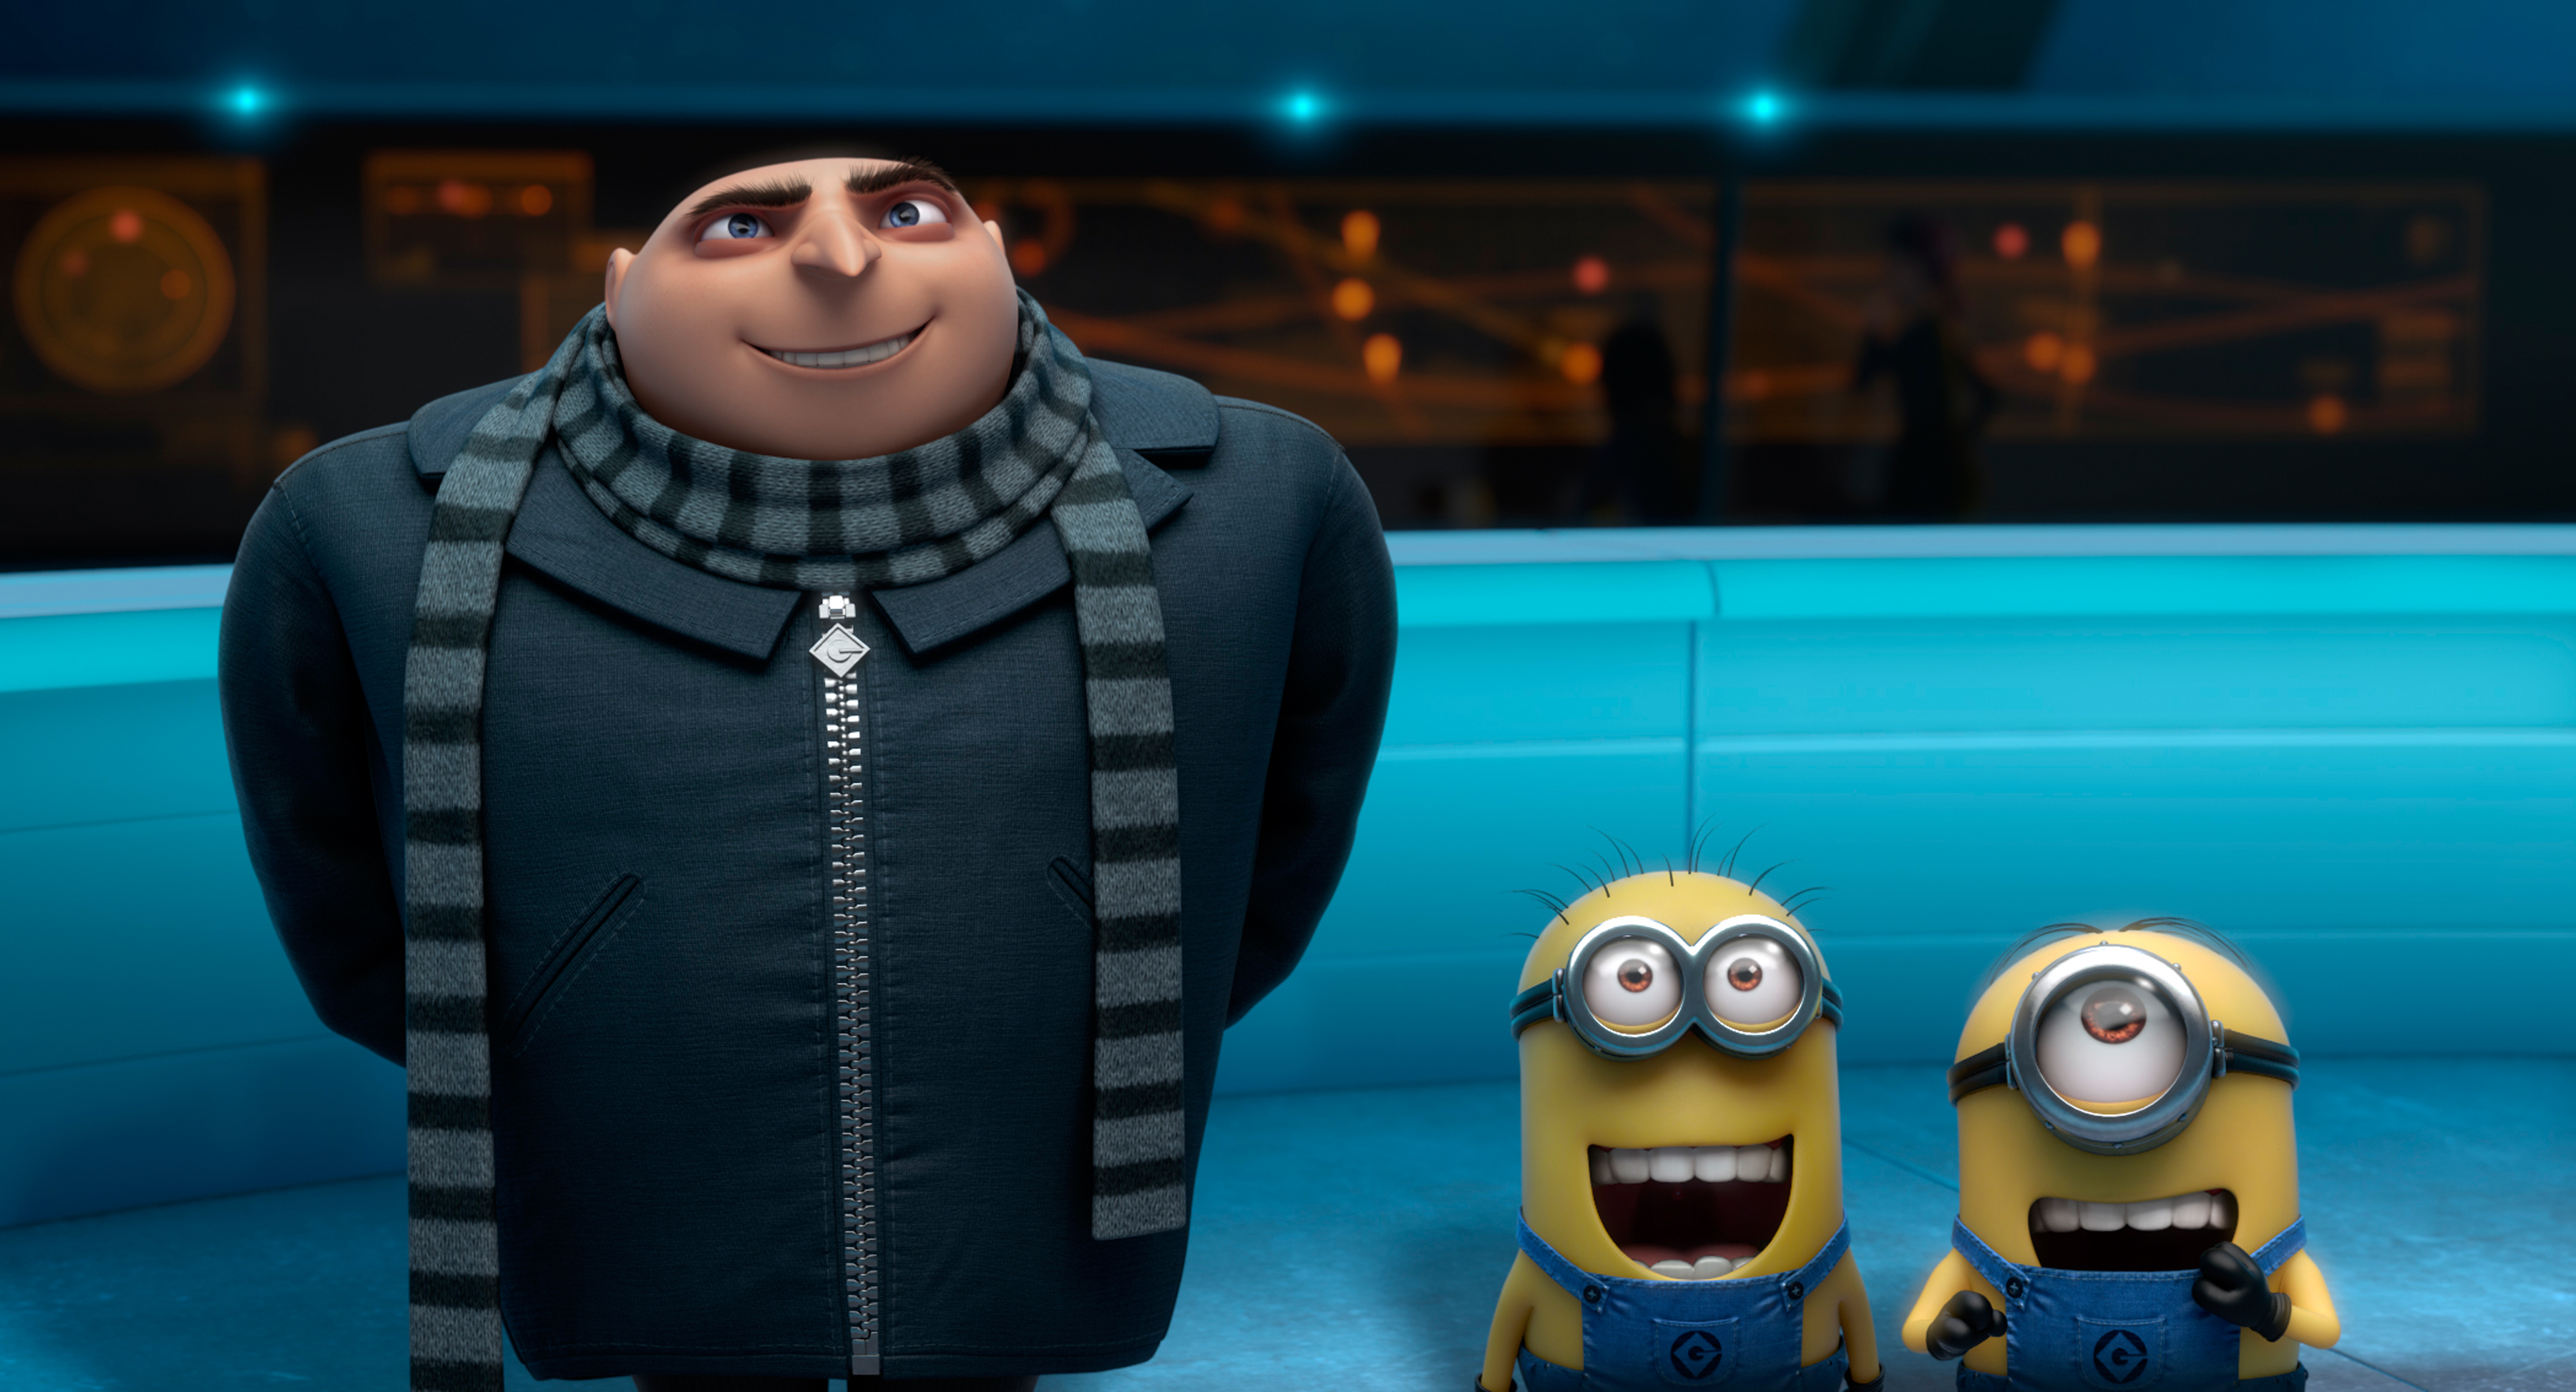 MOI MOCHE ET MÉCHANT - Despicable Me Illumination Entertainment Mac Guff Movie film 2012 Image 1 - Go with the Blog